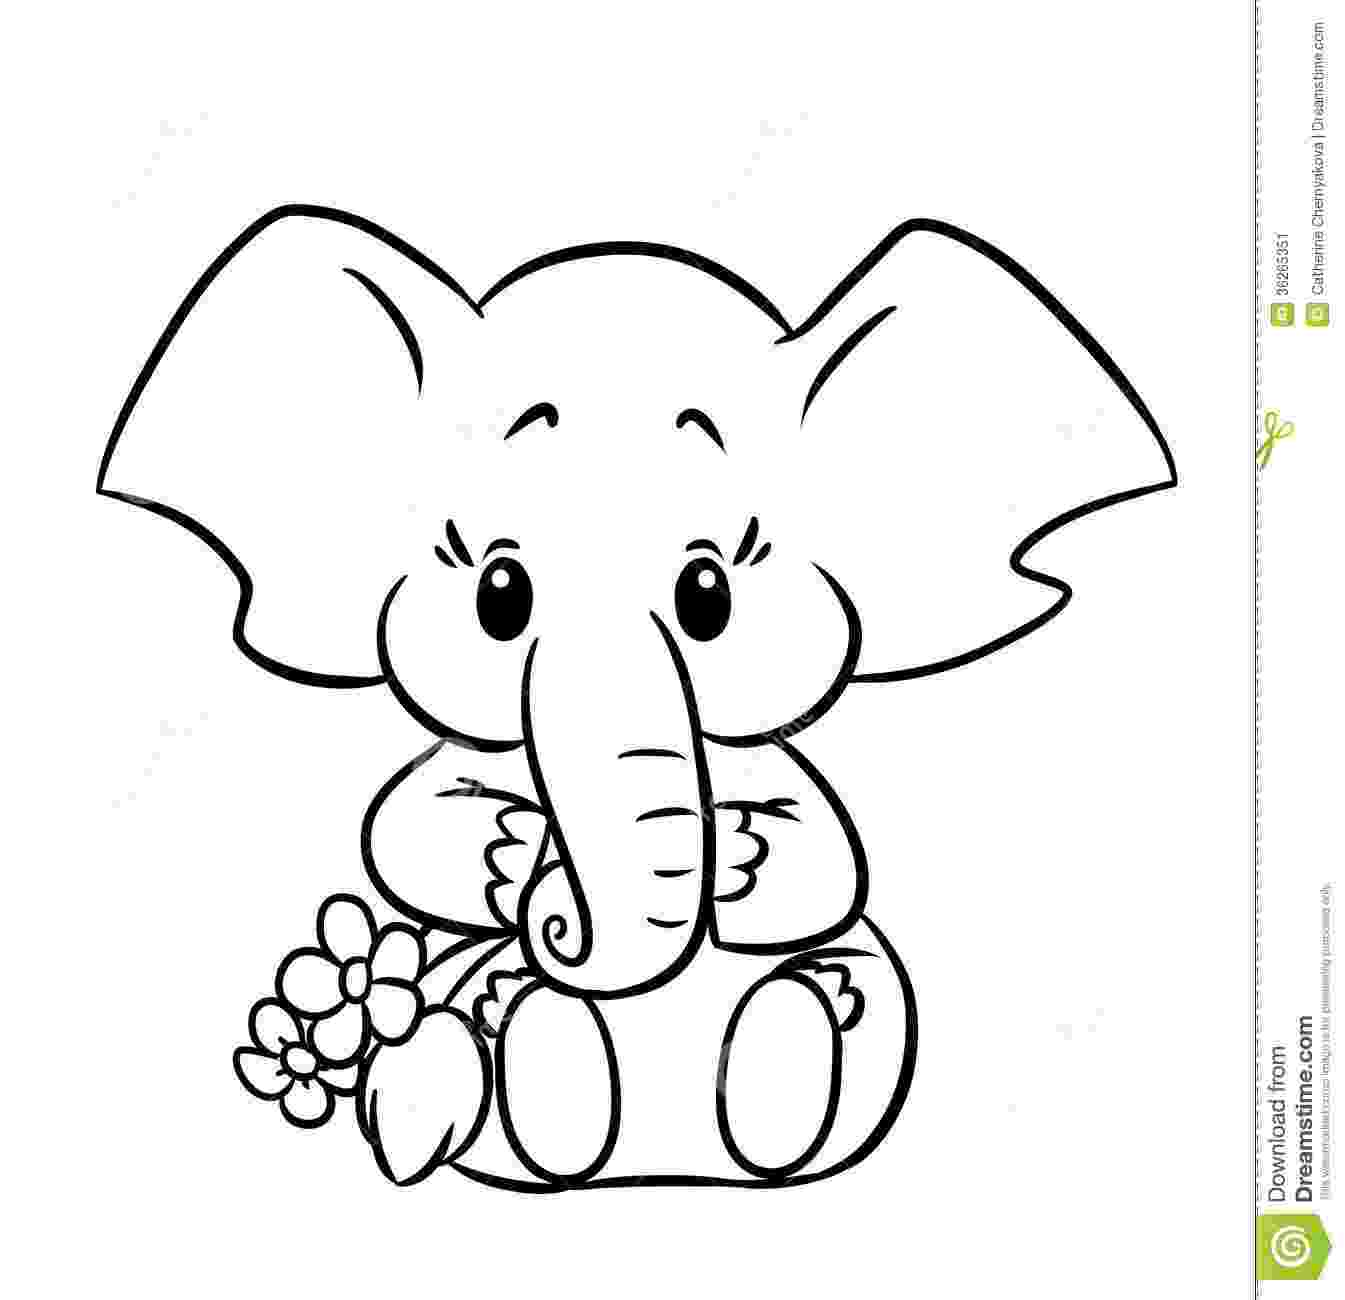 elephant pictures to color baby elephant coloring pages to download and print for free pictures elephant to color